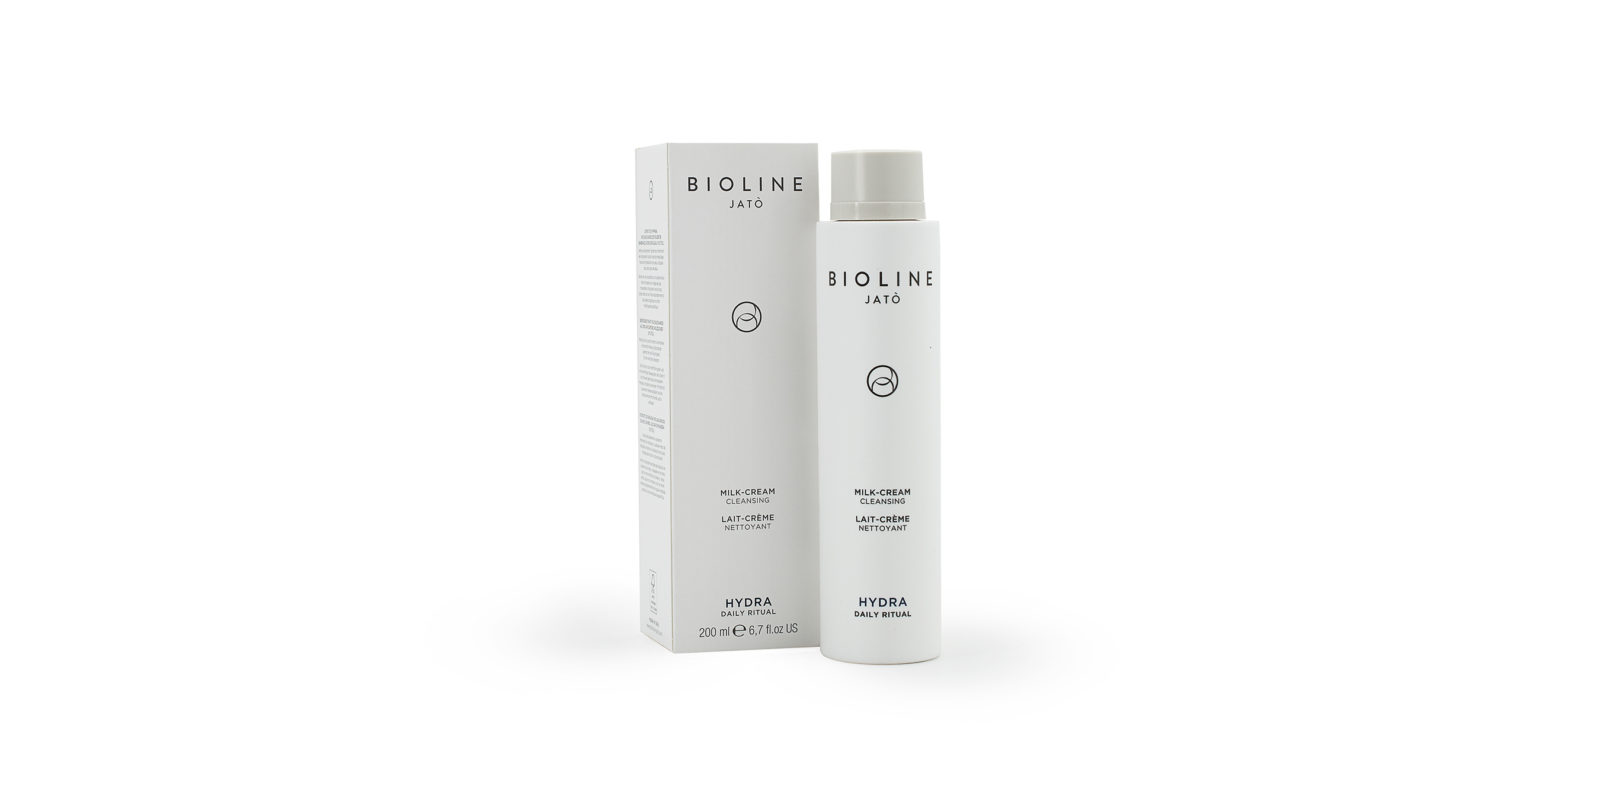 Bioline Jatò Hydra Daily Ritual Milk-Cream Cleansing